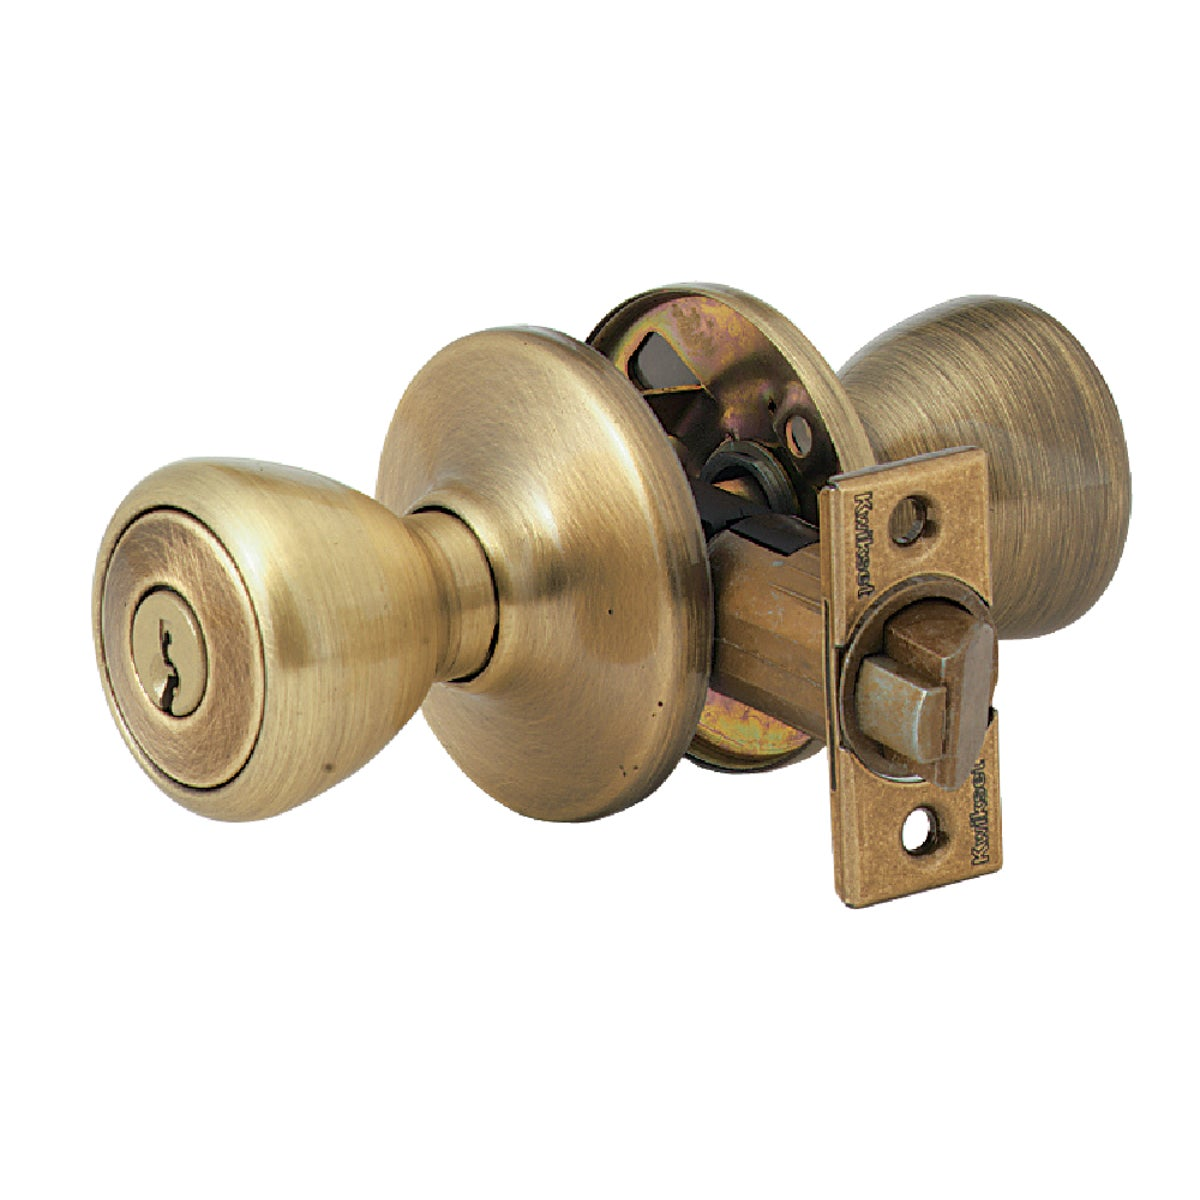 AB CP TYLO ENTRY LOCK - 400T 5 CP K6 by Kwikset